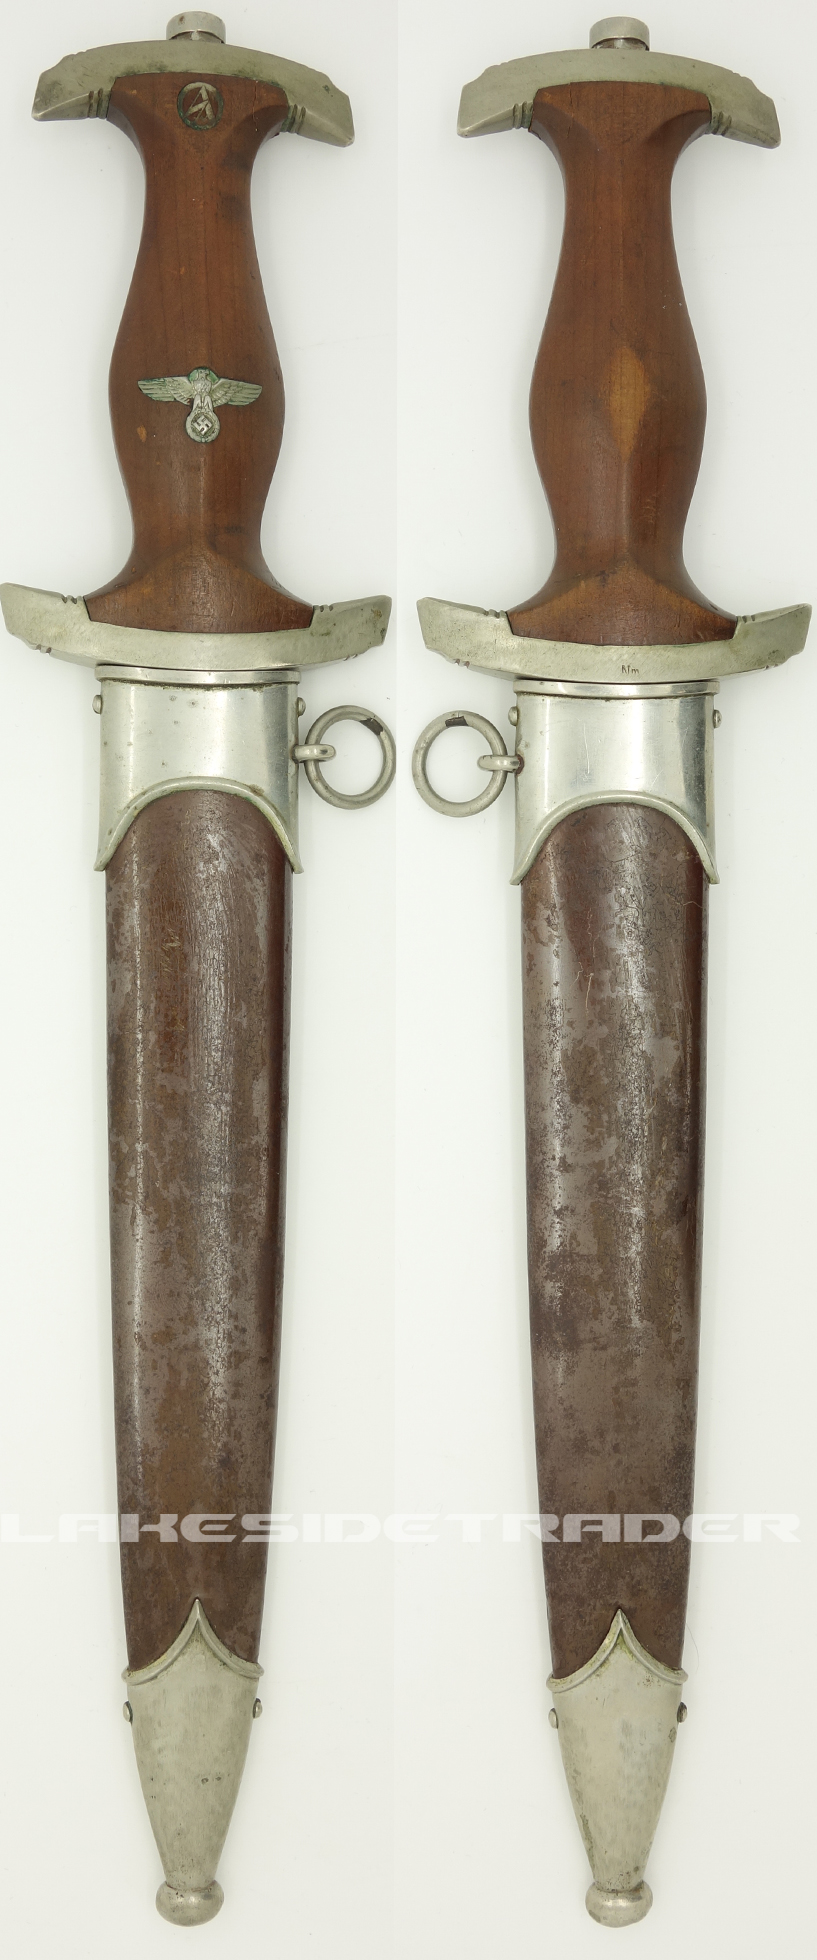 Early SA Dagger by Thomas Wielputz with a unique blade